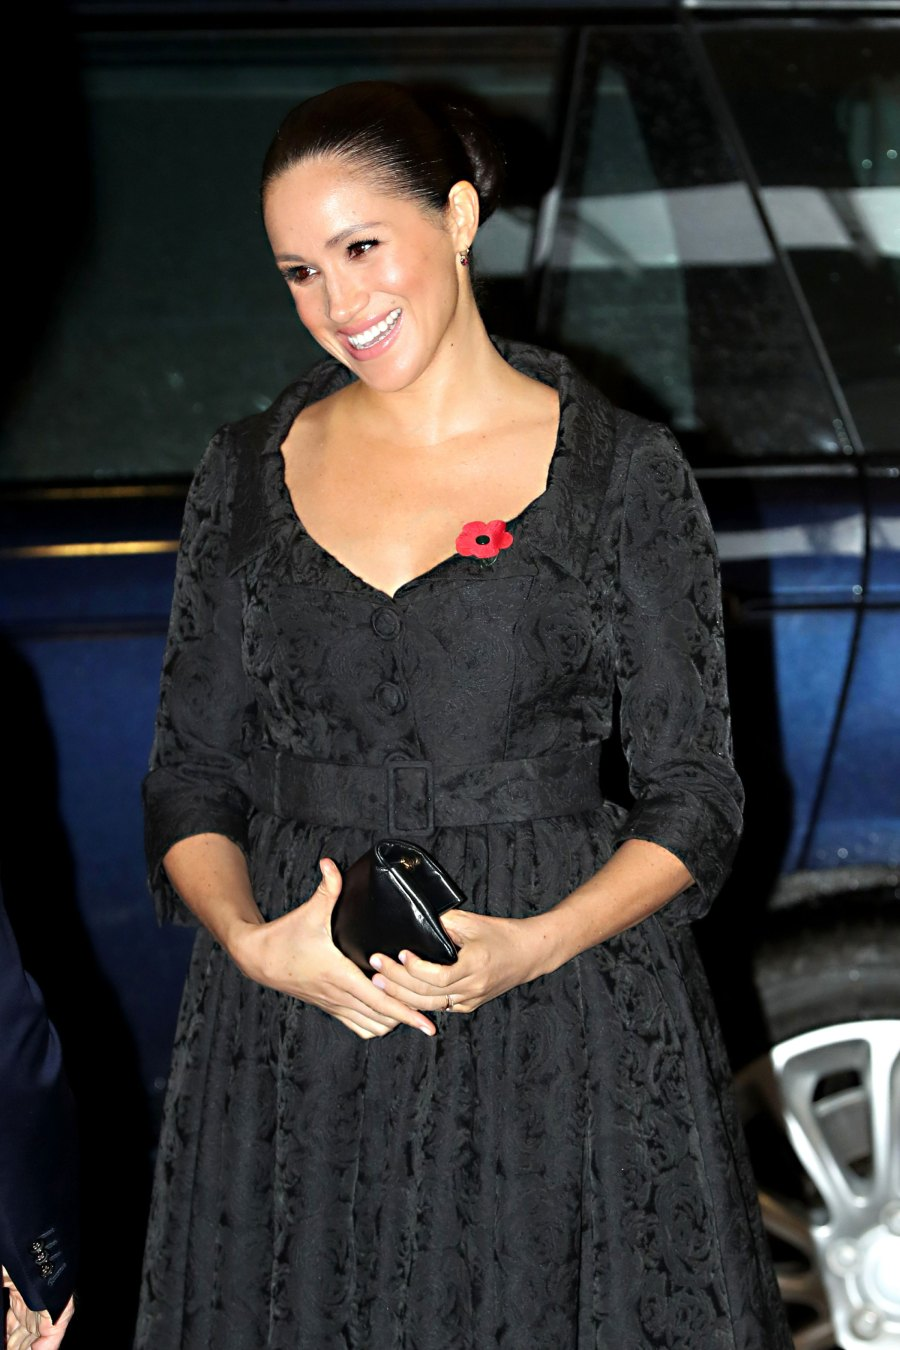 Duchess Meghan Dazzles in Anything-But-Basic Black